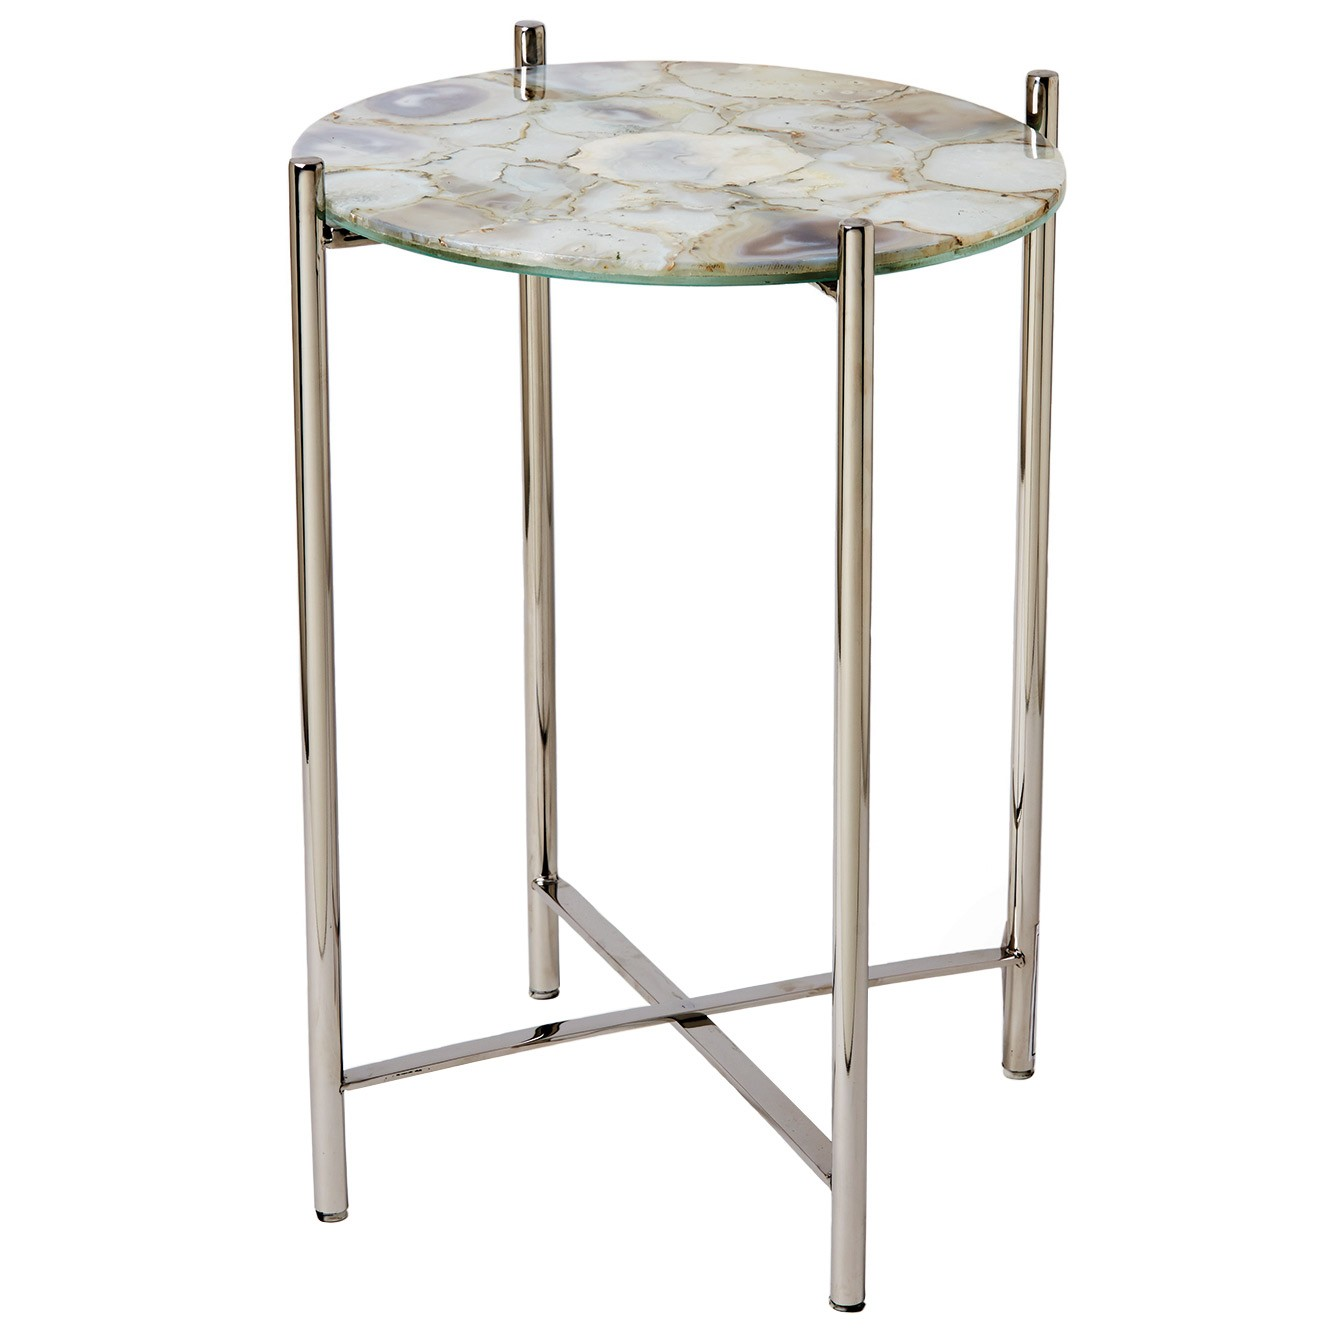 popular white round accent table with side marble and metal threshold parquet outdoor swing home decor small battery powered lamp oblong coffee half circle console outside chair